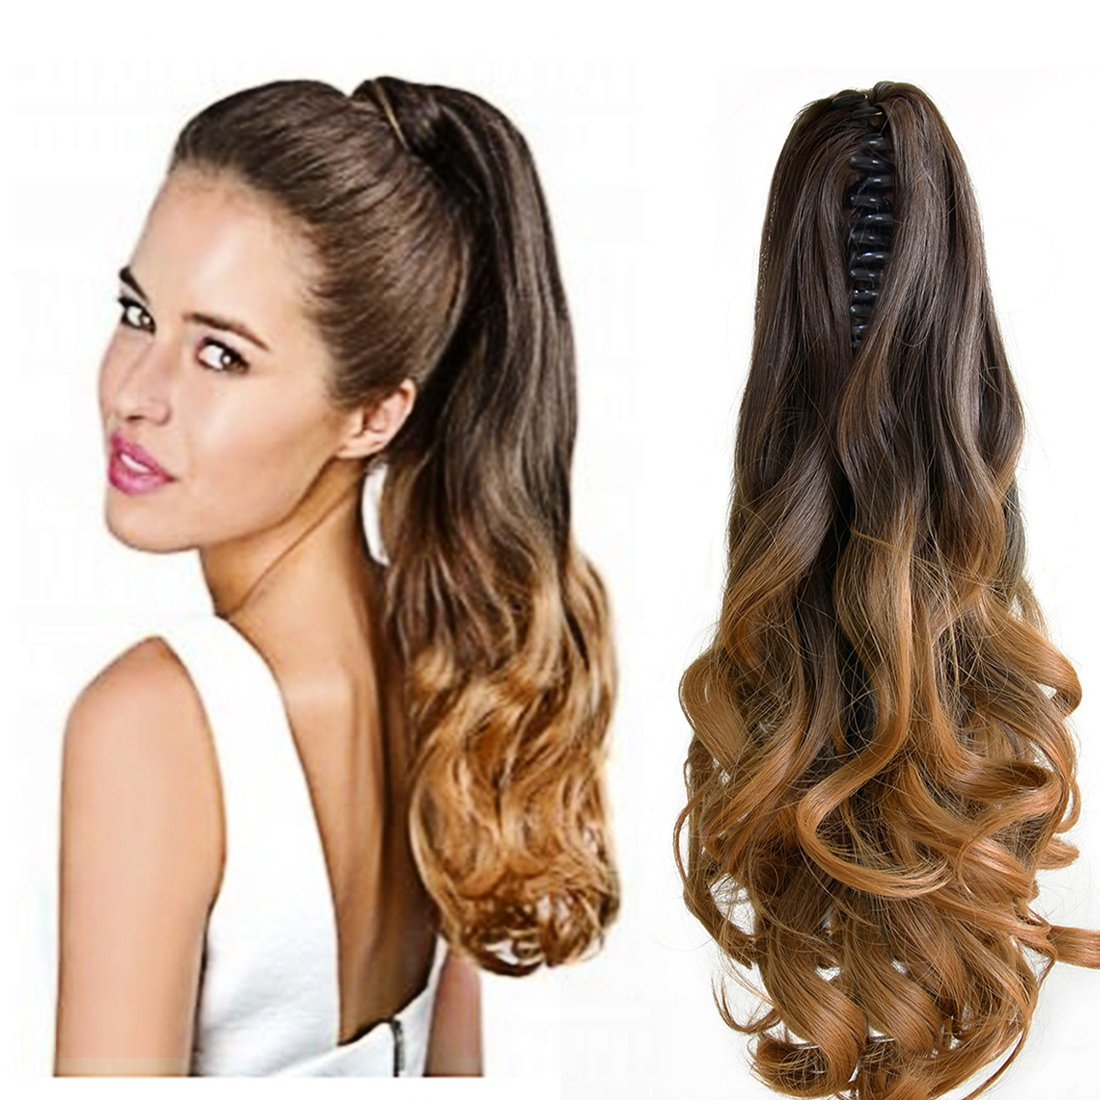 Neverland Beauty 20''(50cm) Natural Ombre Look Two Tone Long Big Wavy Claw Curly Ponytail Clip in Hair Extensions 6#/27# by Neverland Beauty & Health